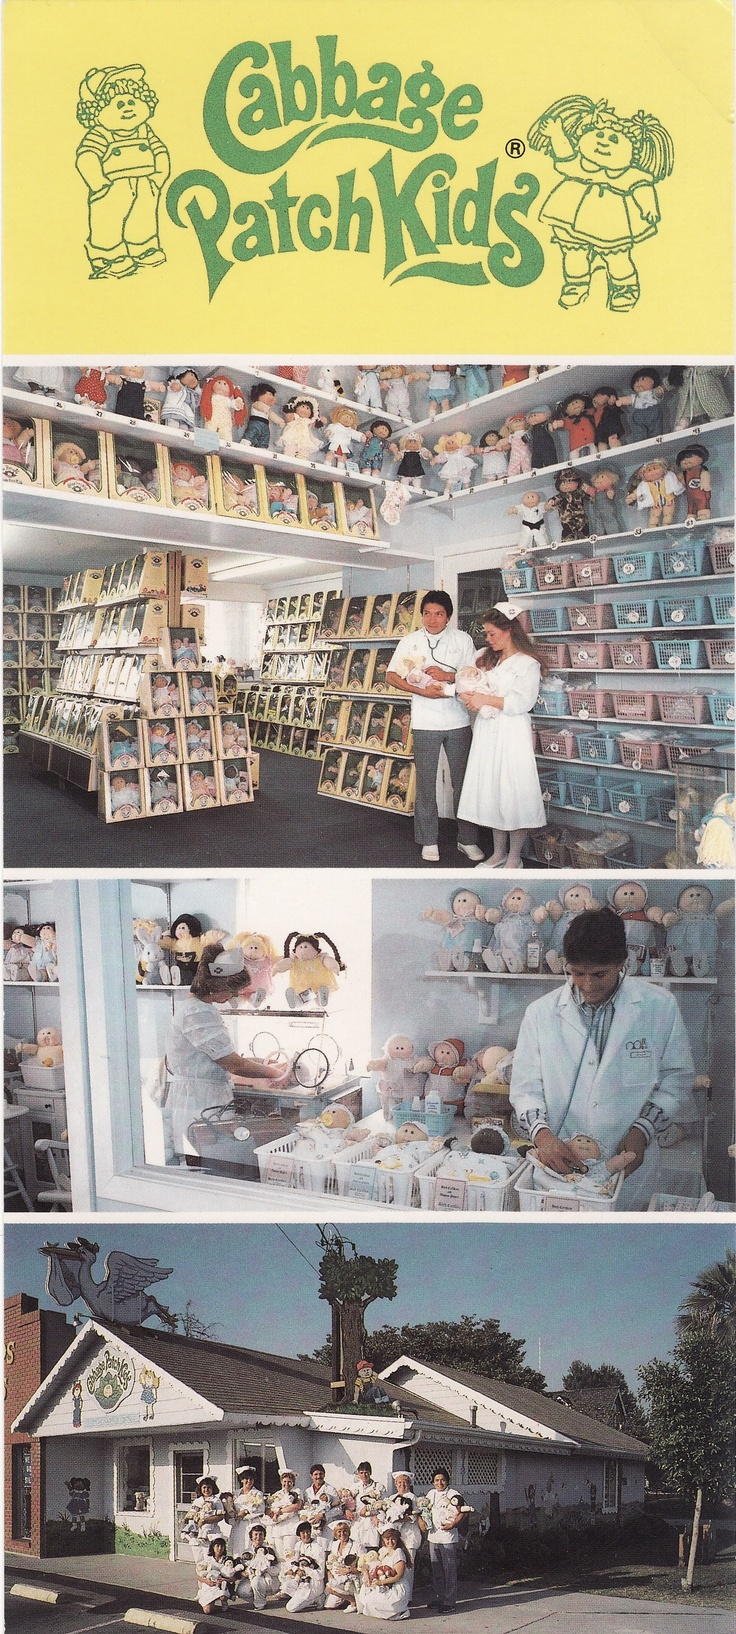 Cabbage Patch Kids adoption center. I would have sold myself into slavery in order to score a visit to this place.